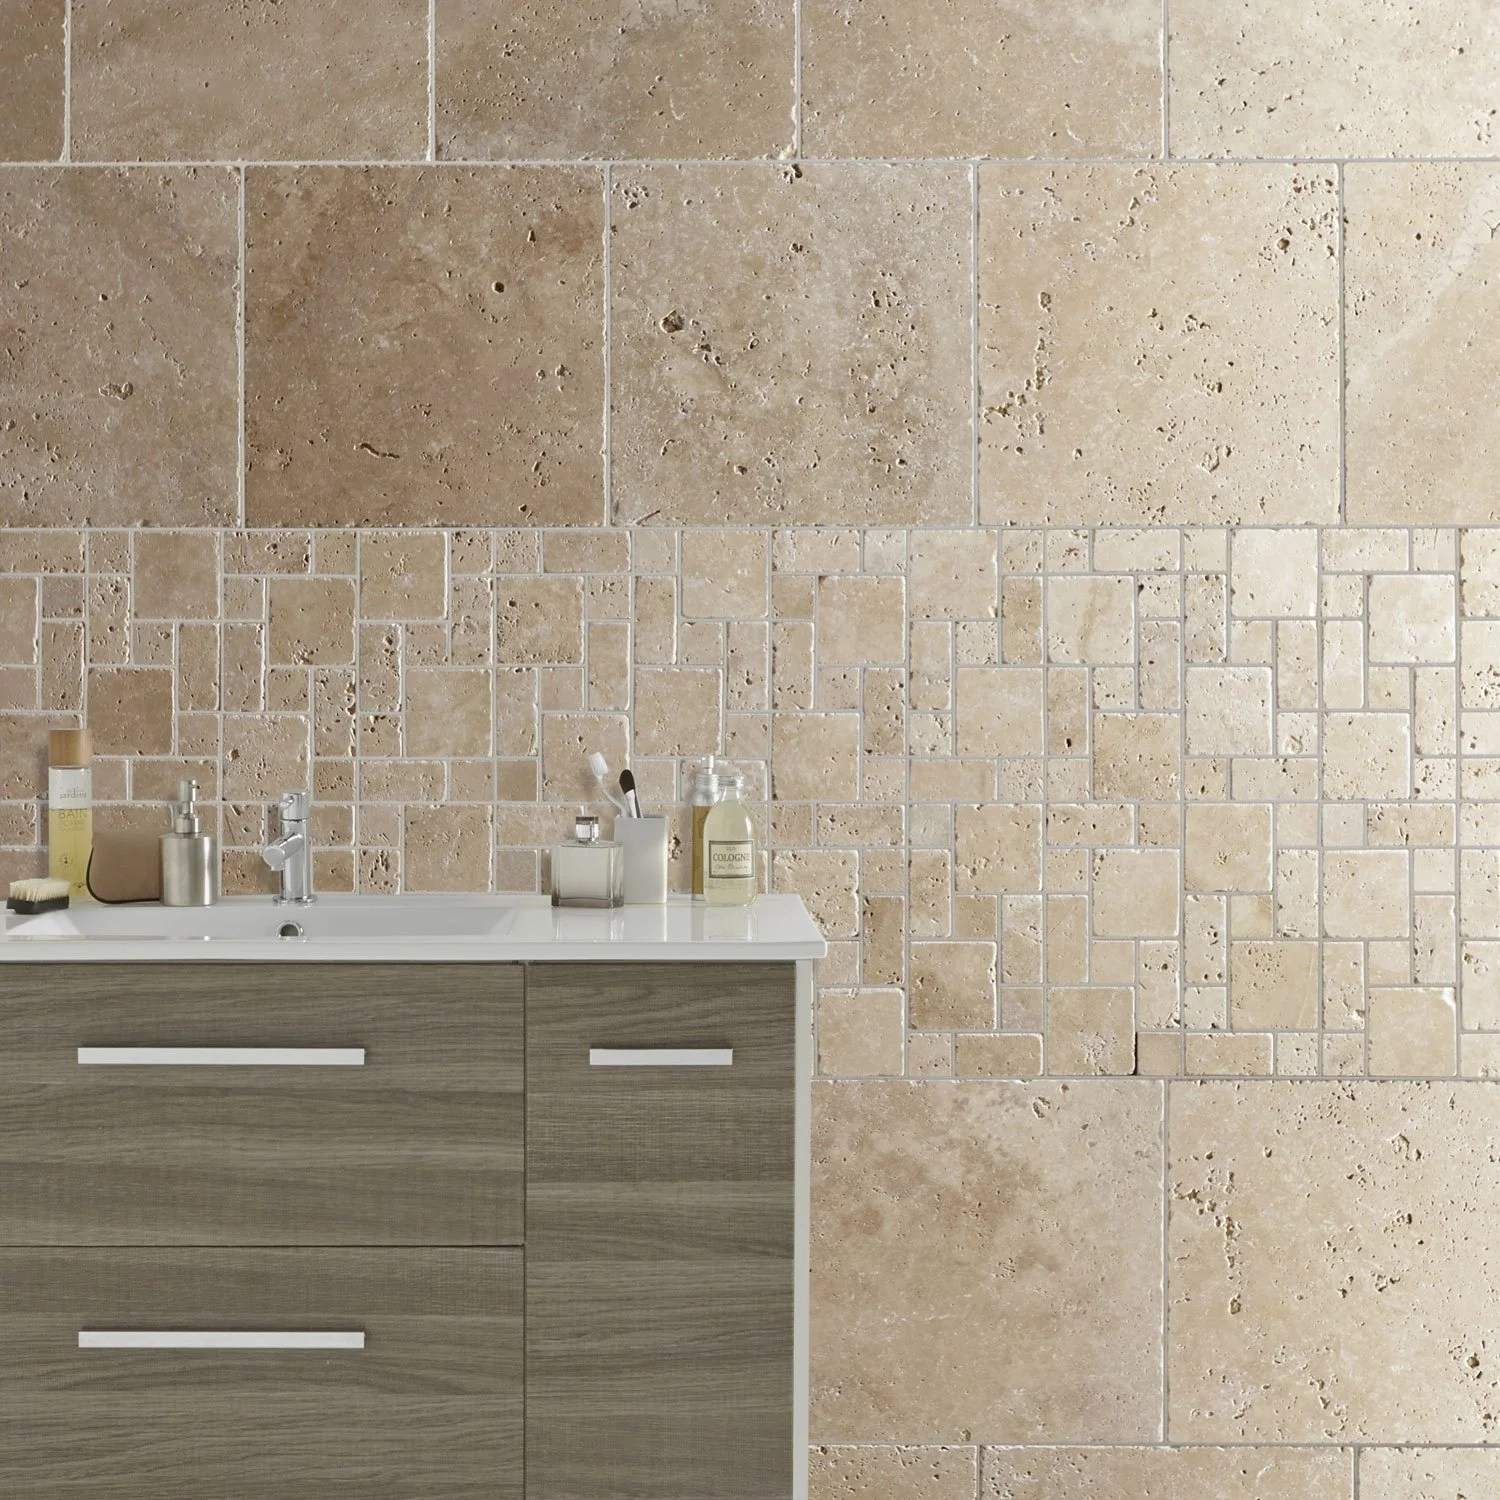 Travertin Salle De Bain Leroy Merlin Travertin Sol Et Mur Beige Effet Pierre Travertin L 40 6 X